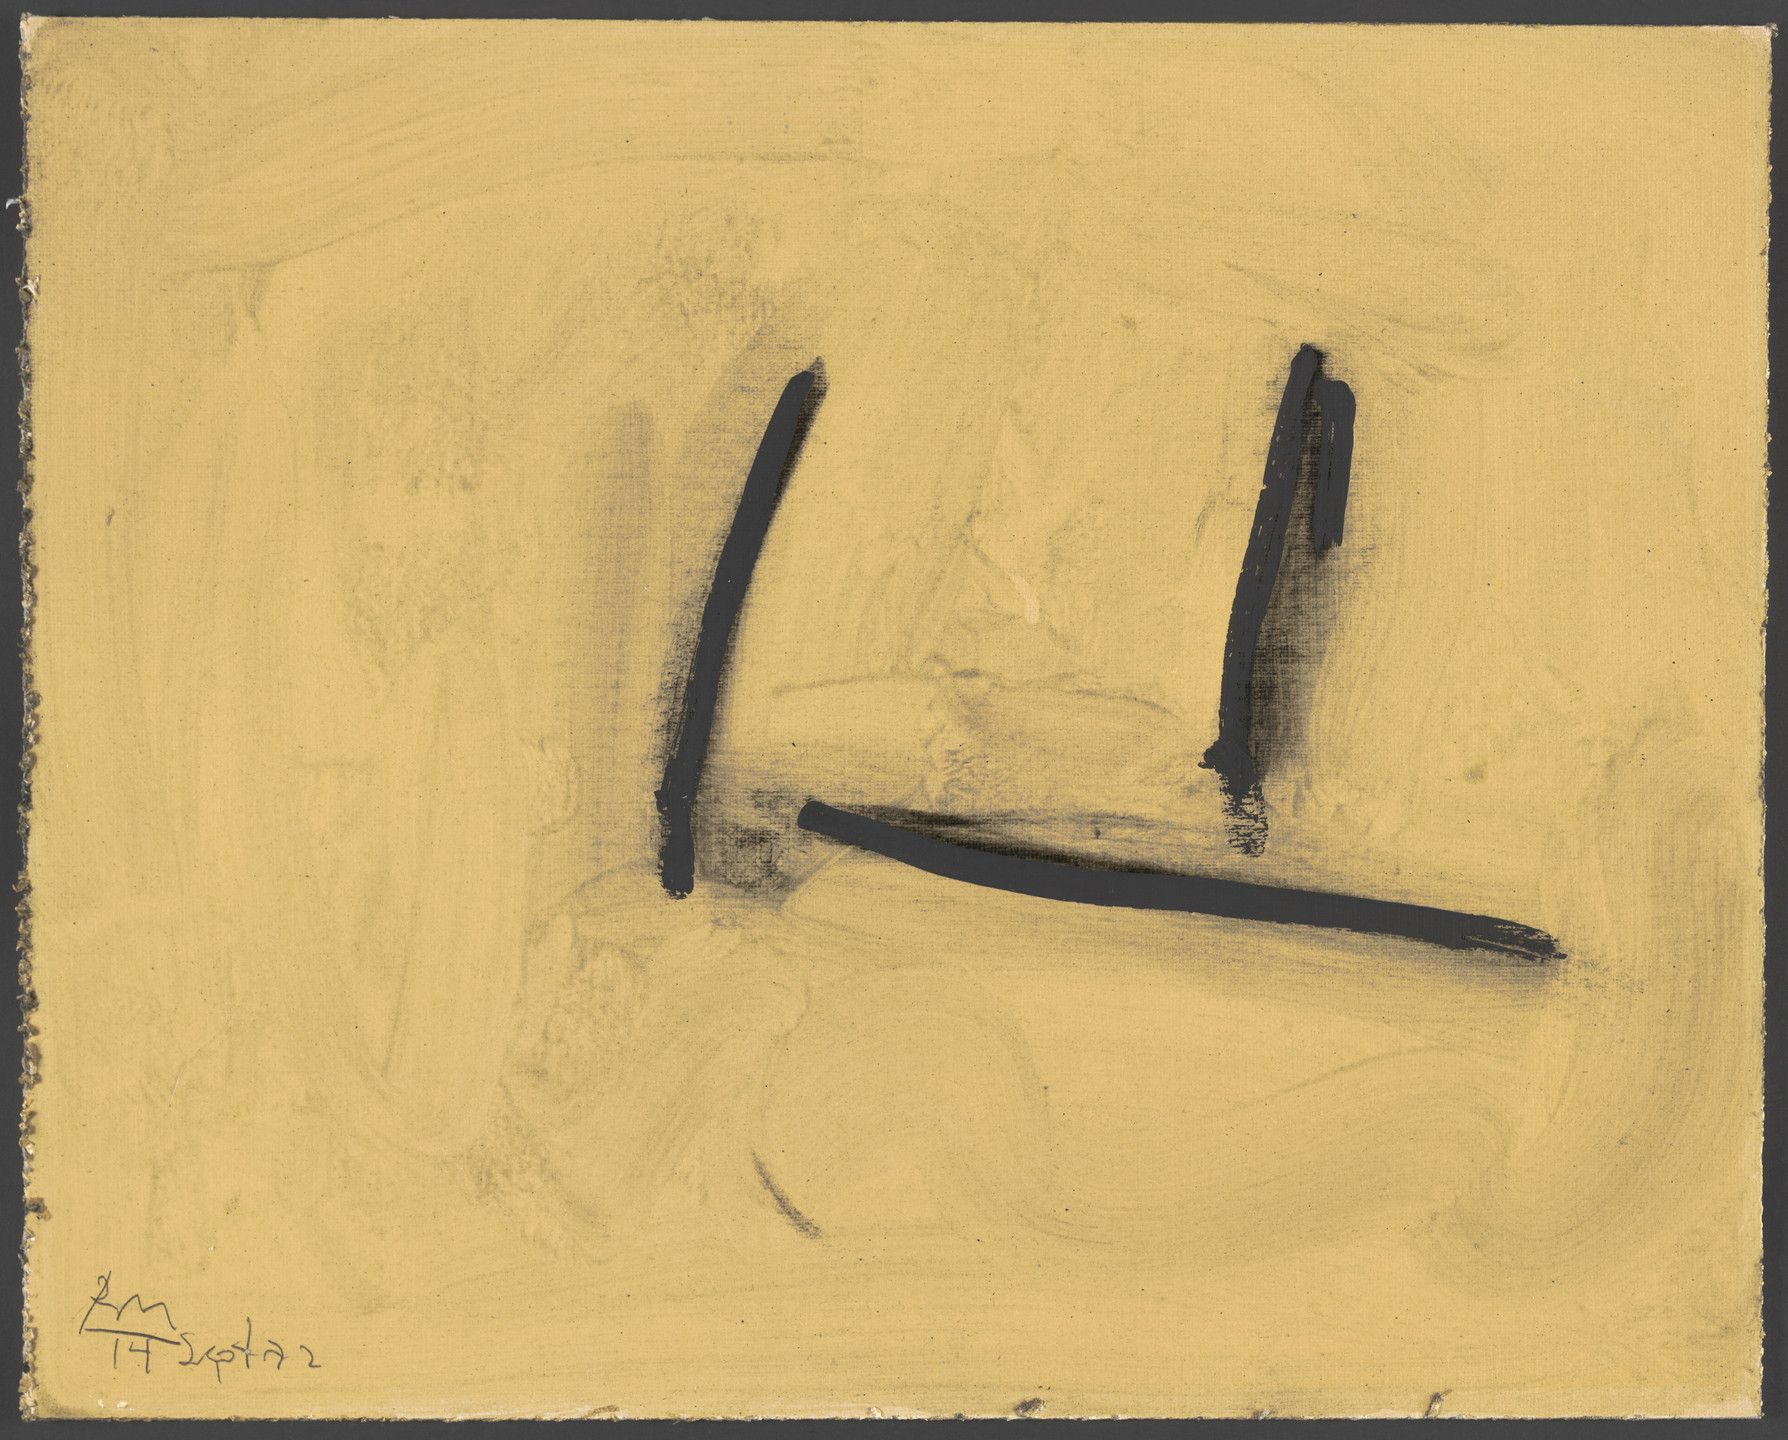 Robert Motherwell. Study for Shem the Penman #4. 1972